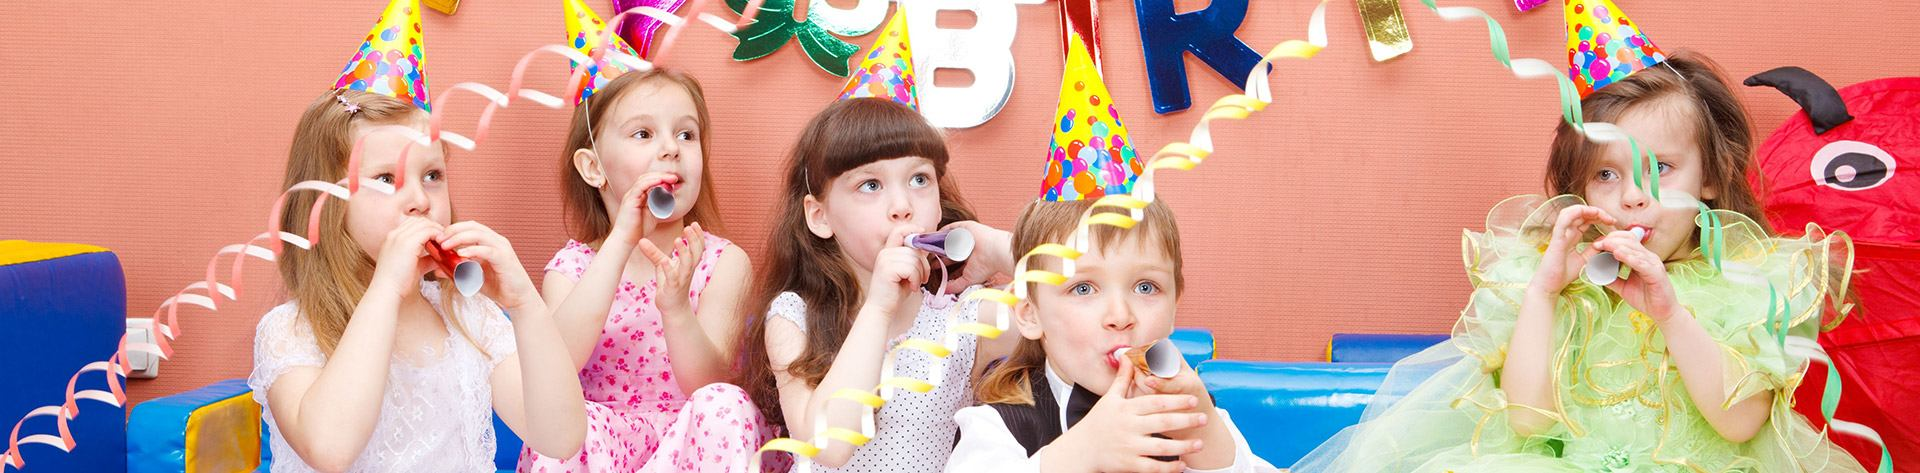 Young children celebrating